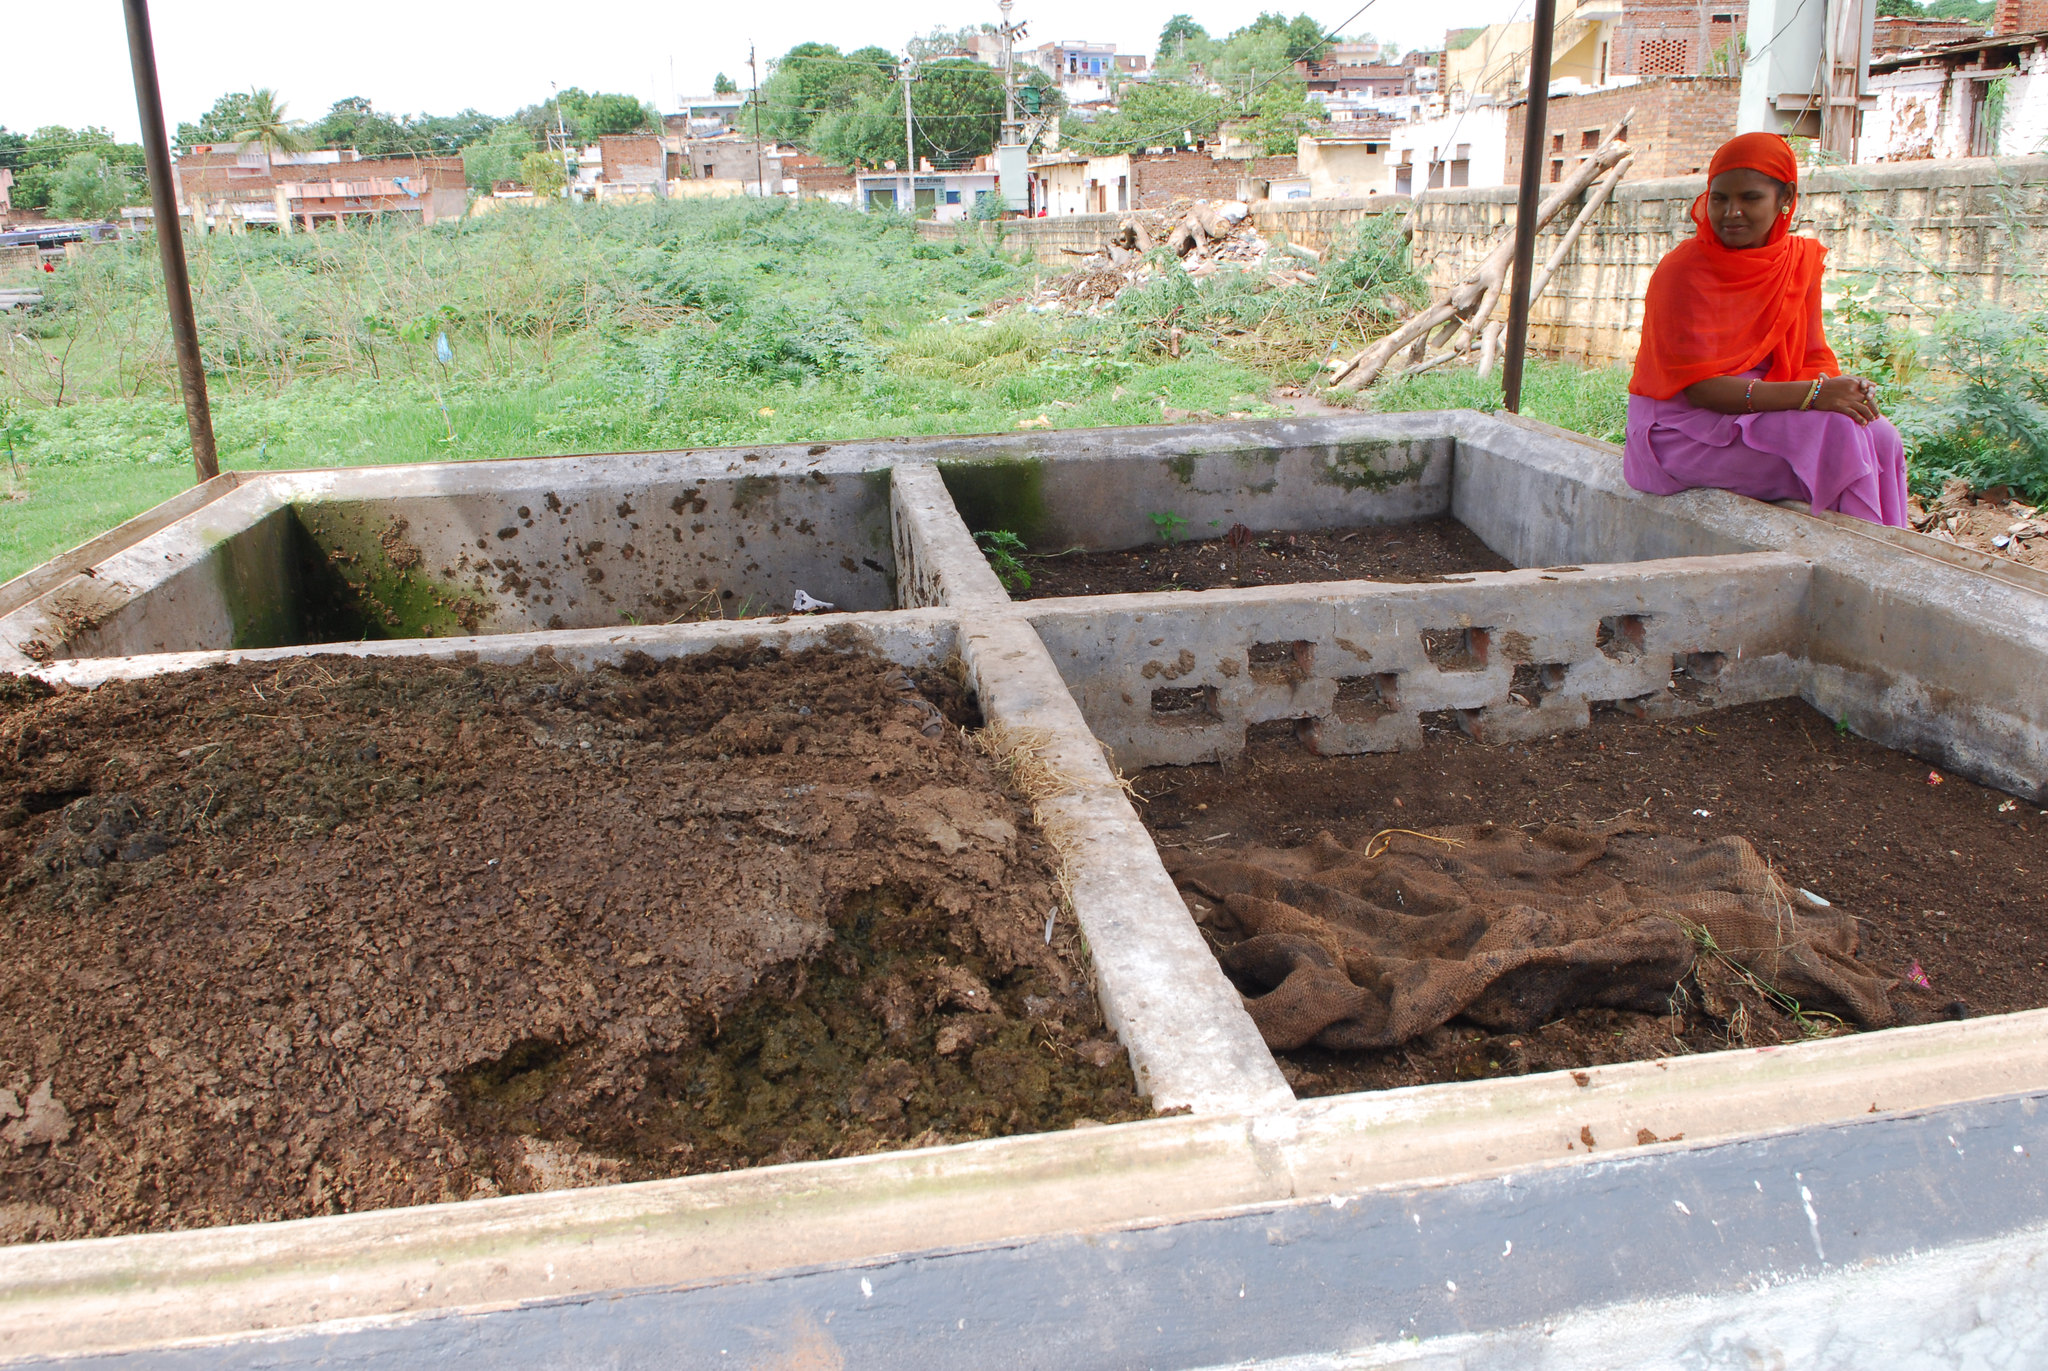 Worm composting in Gwalior, India. Photo by ILO-Vijay Kutty/Flickr.